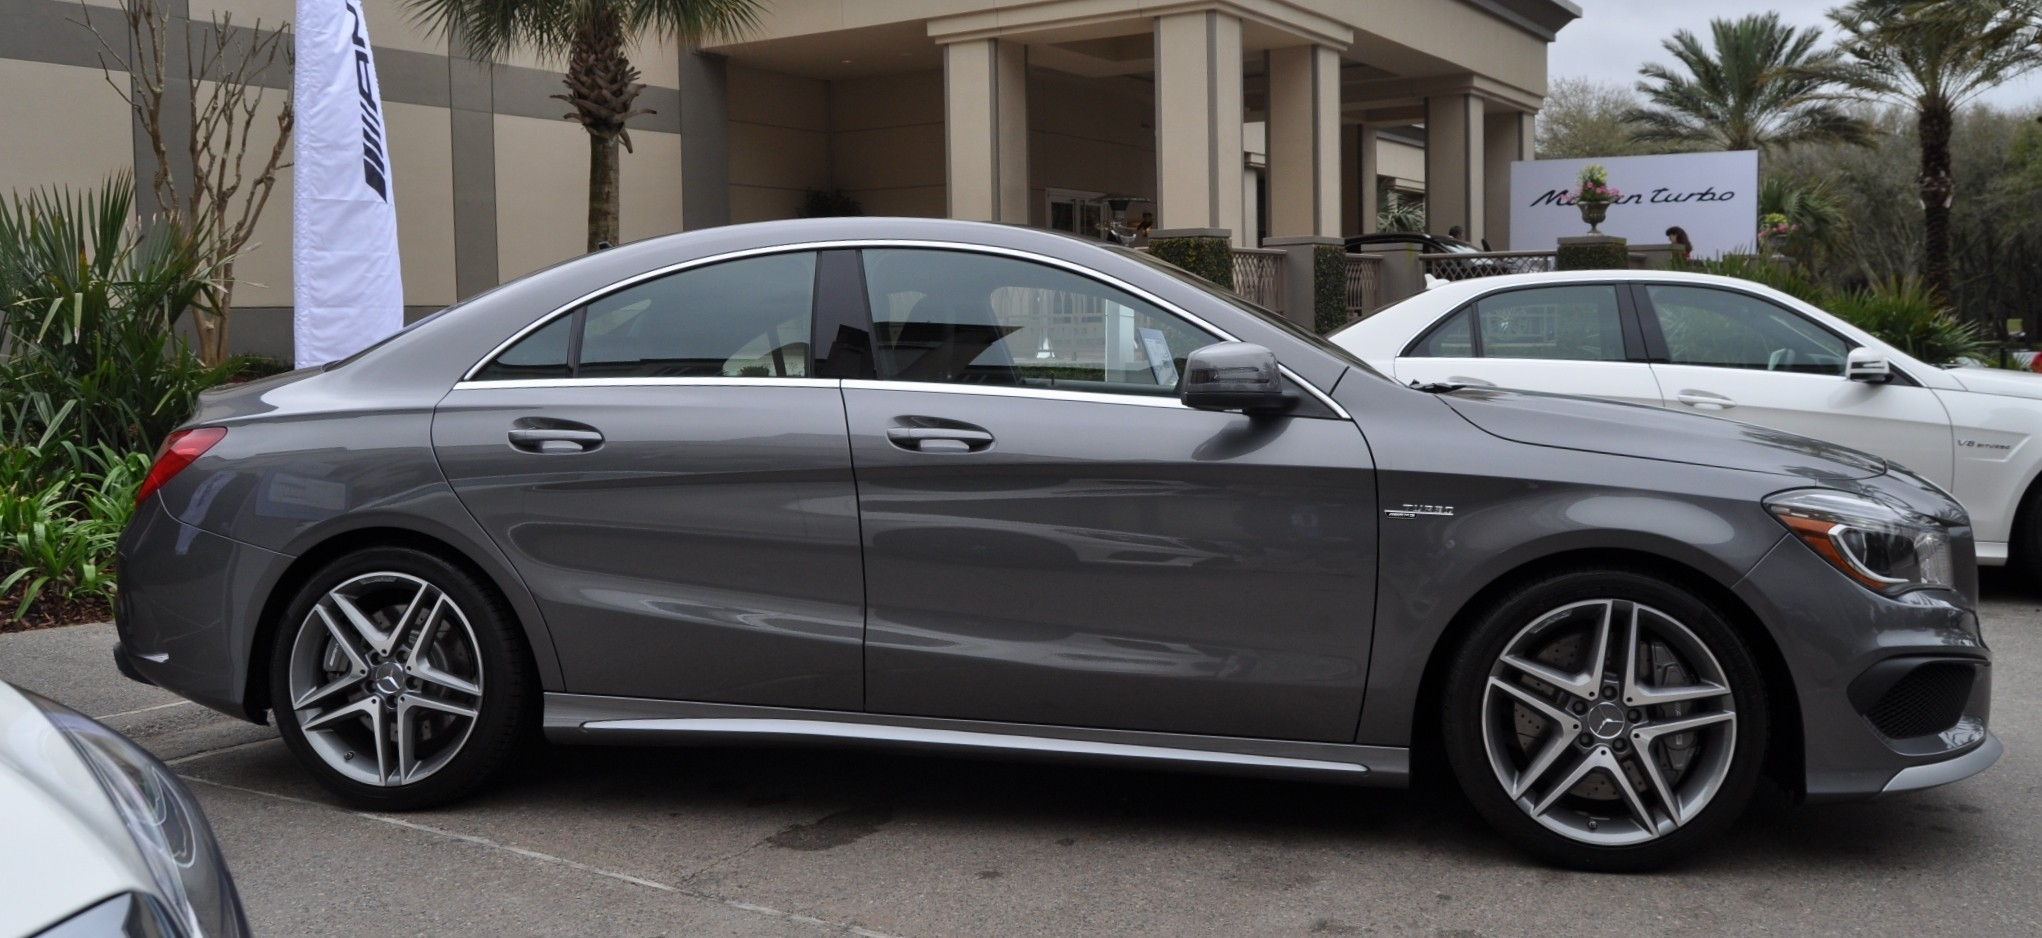 2015 mercedes cla 45 amg review specs price release for 2015 mercedes benz cla class cla 45 amg